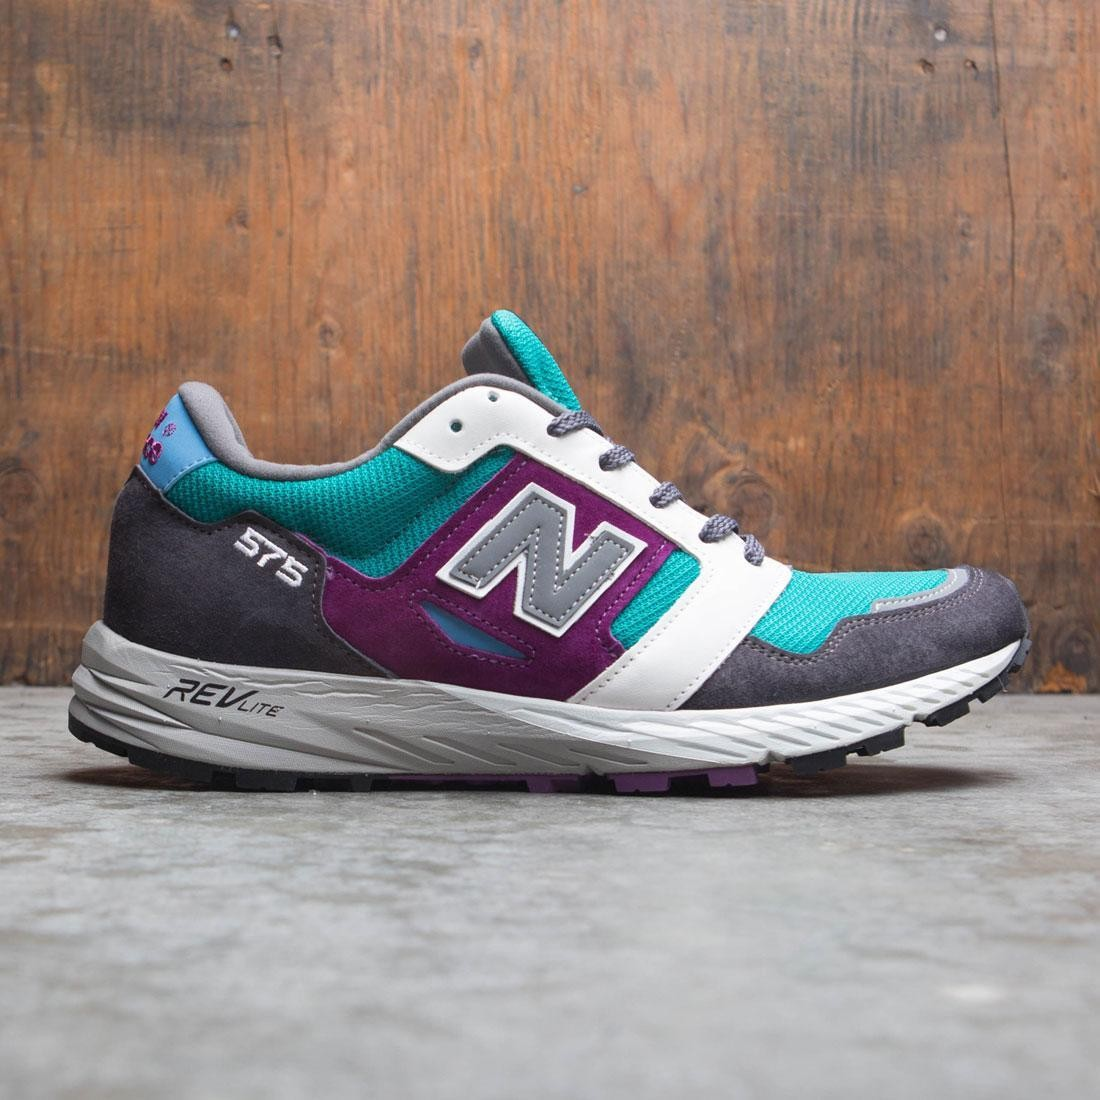 New Balance Men 575 Mountain Wild MTL575GP - Made In UK (gray/ dark grey / geen / purple)